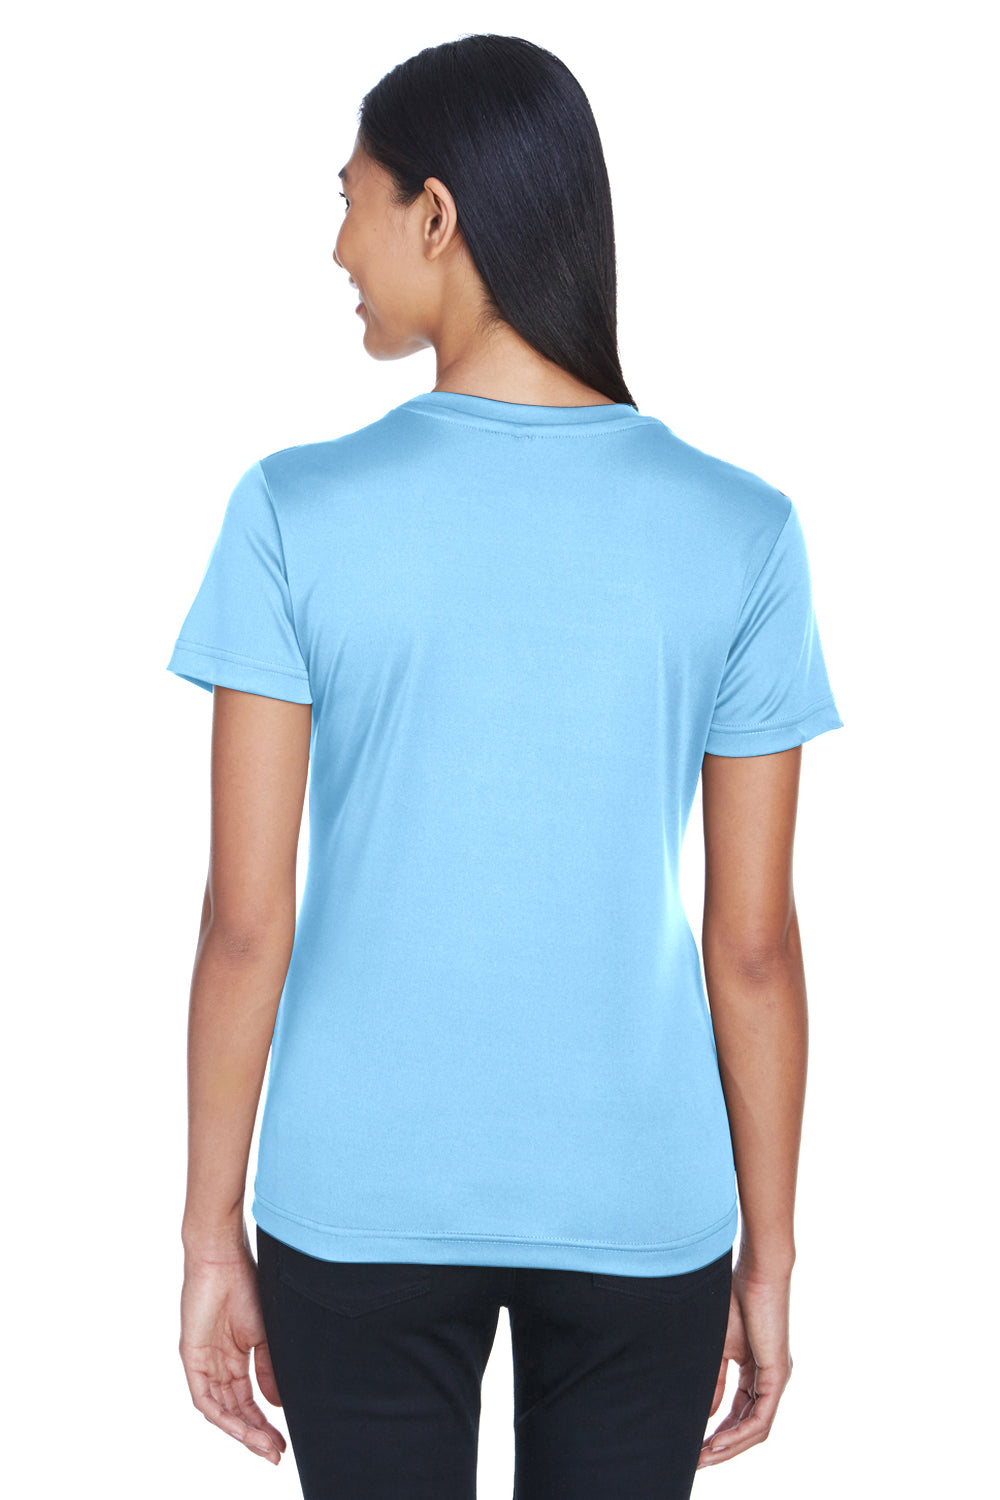 UltraClub 8620L Womens Cool & Dry Performance Moisture Wicking Short Sleeve Crewneck T-Shirt Columbia Blue Back